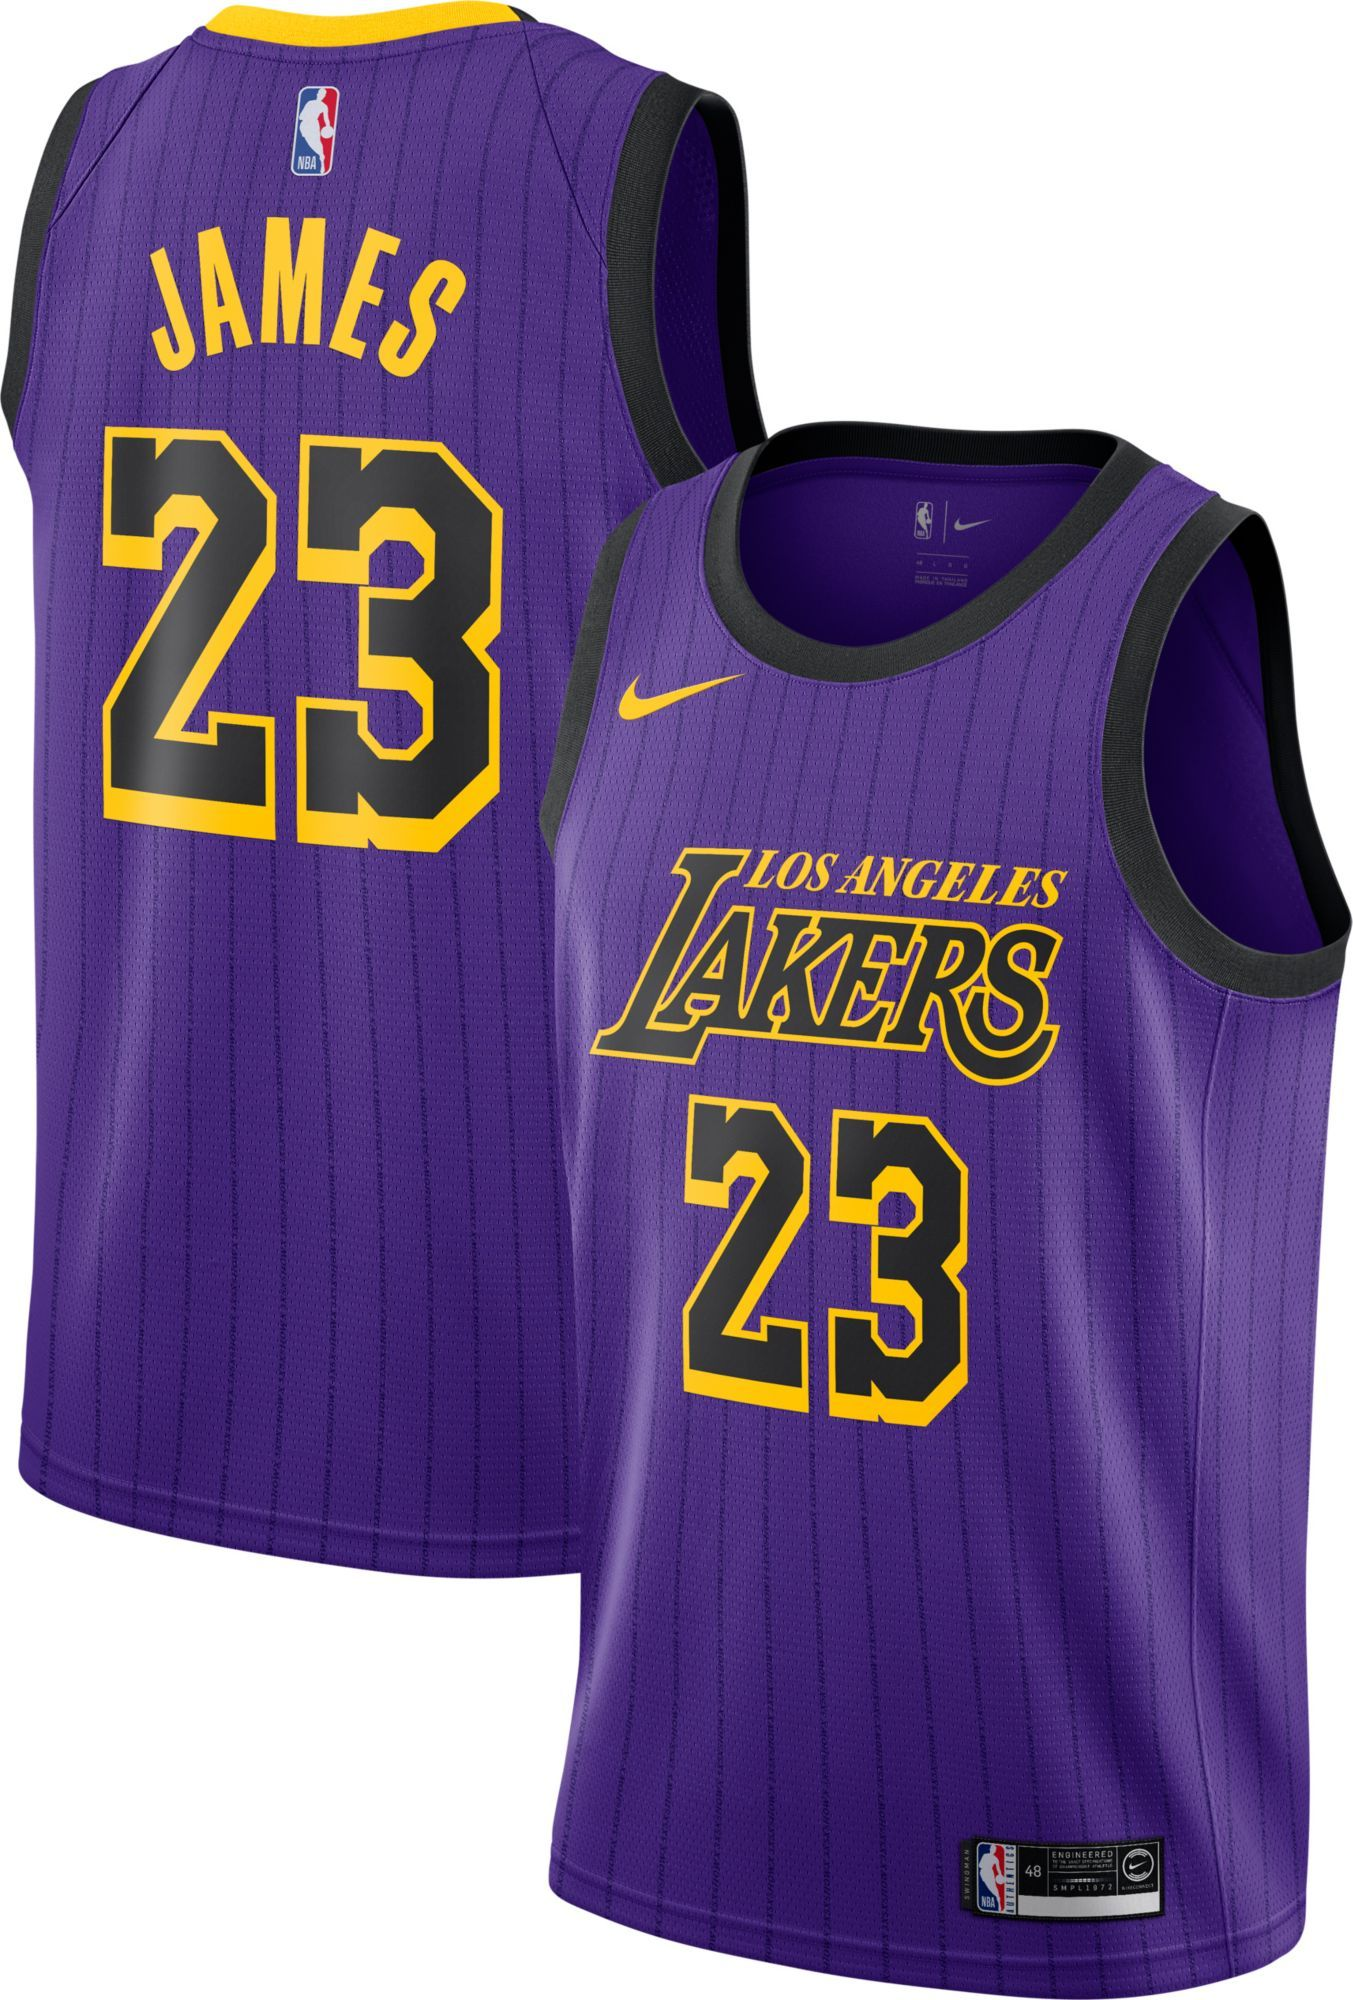 22e6fe22d9c Nike Men s Los Angeles Lakers LeBron James Dri-FIT City Edition Swingman  Jersey